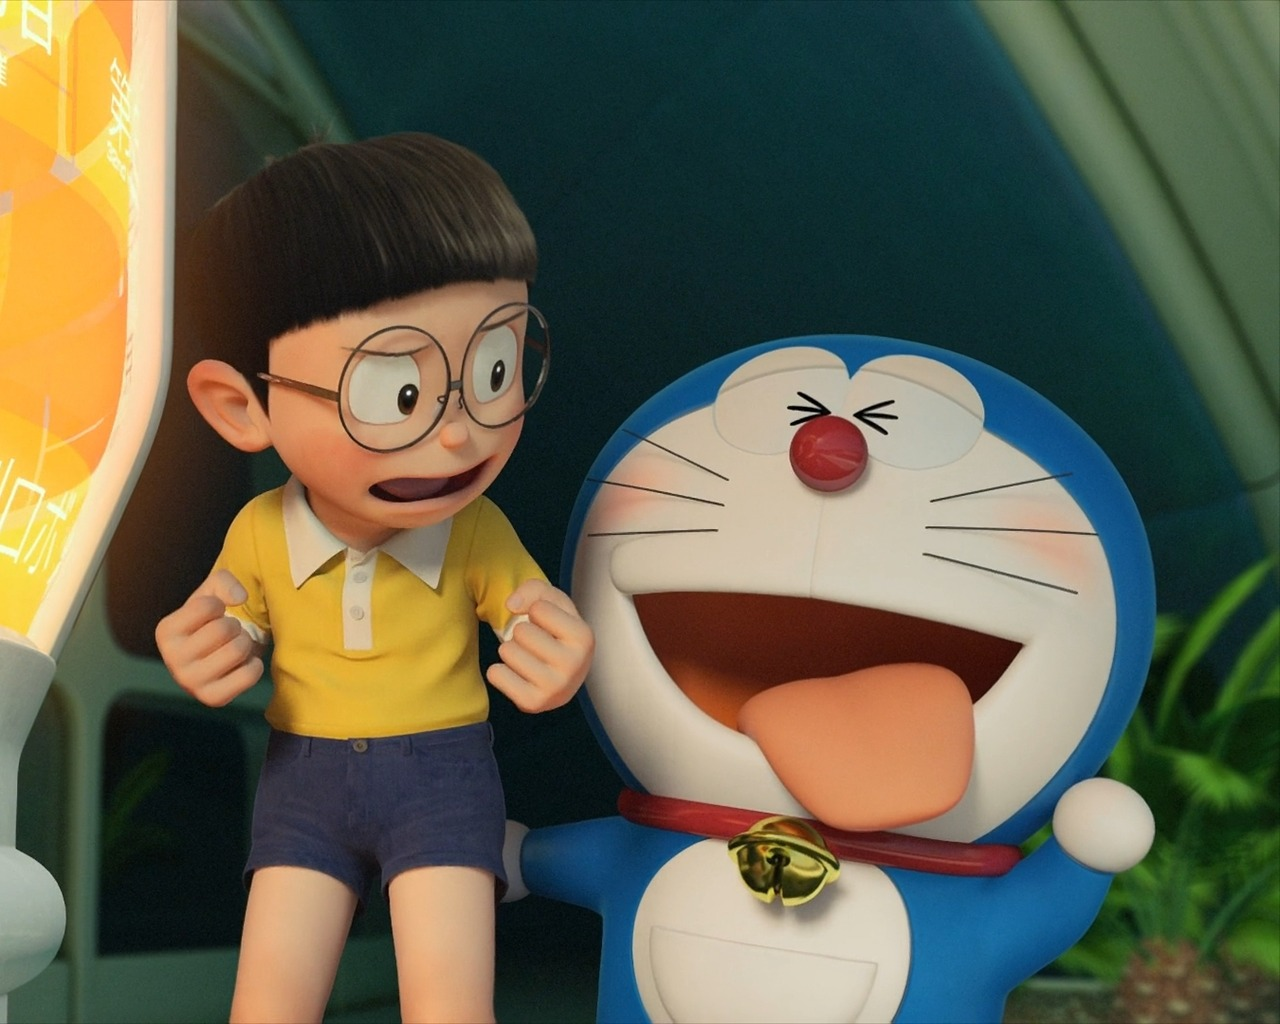 Stand by Me Doraemon 2 [2020] — STREAMING (1080p)